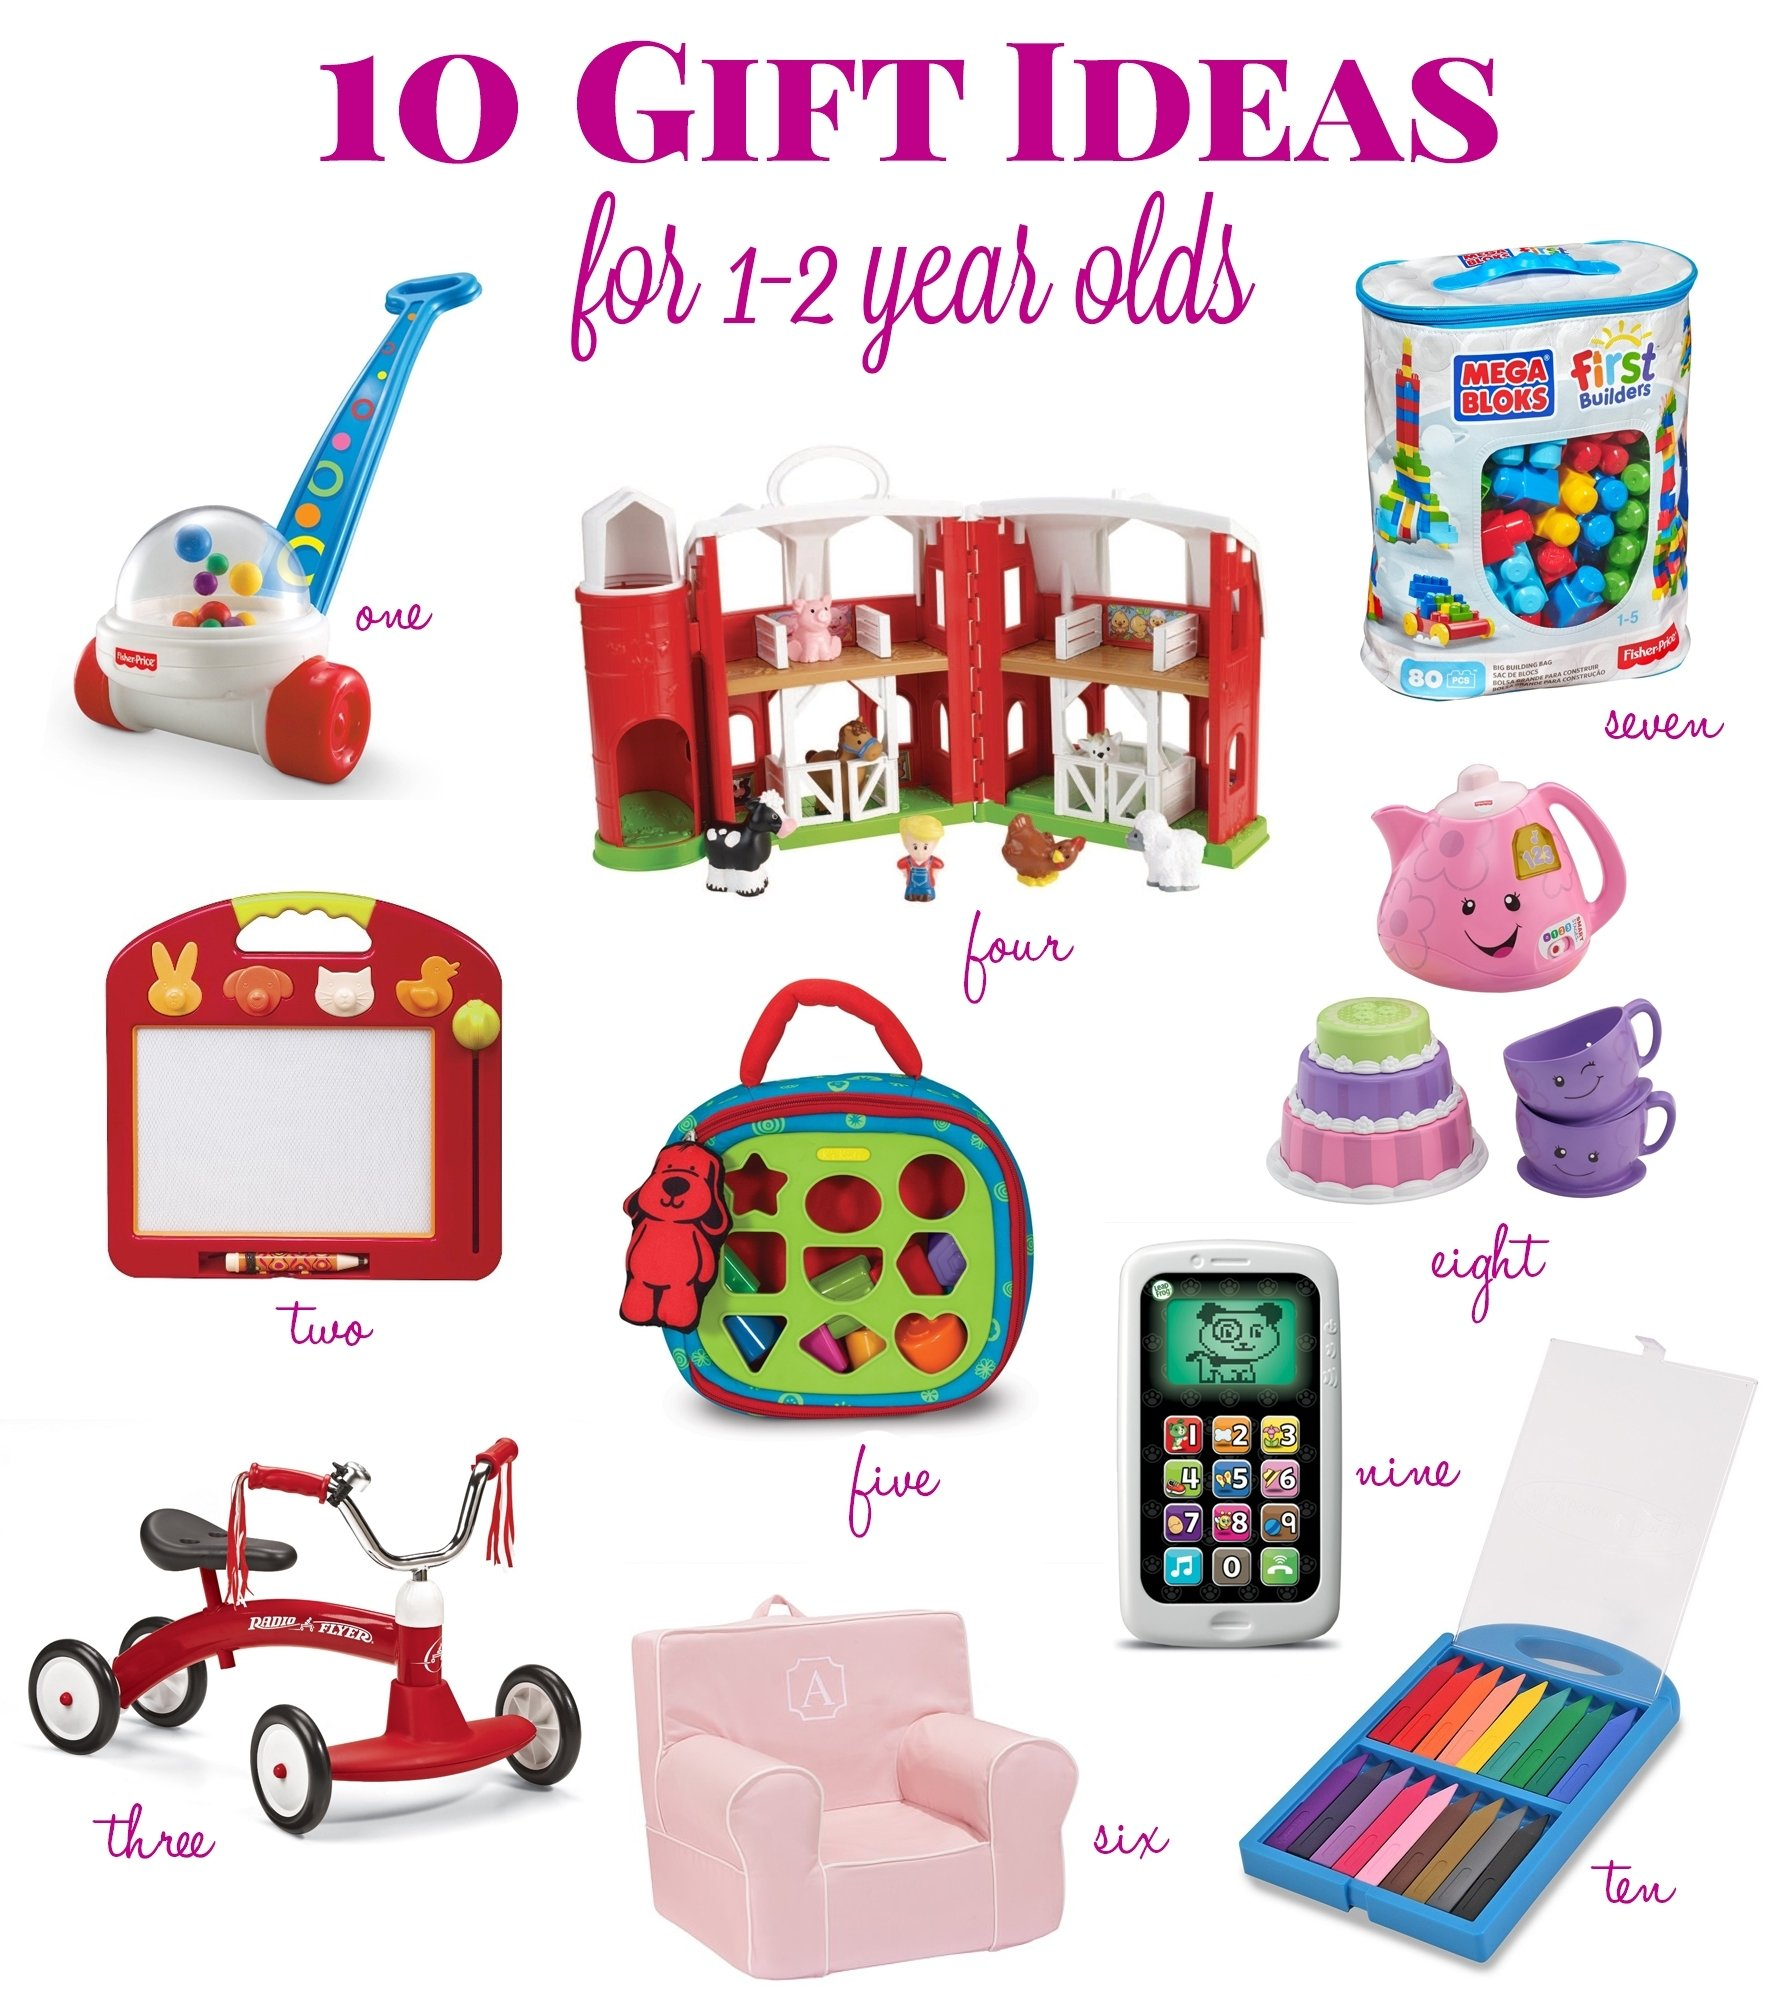 10 Beautiful 12 Year Old Birthday Gift Ideas For A 1 Lifes